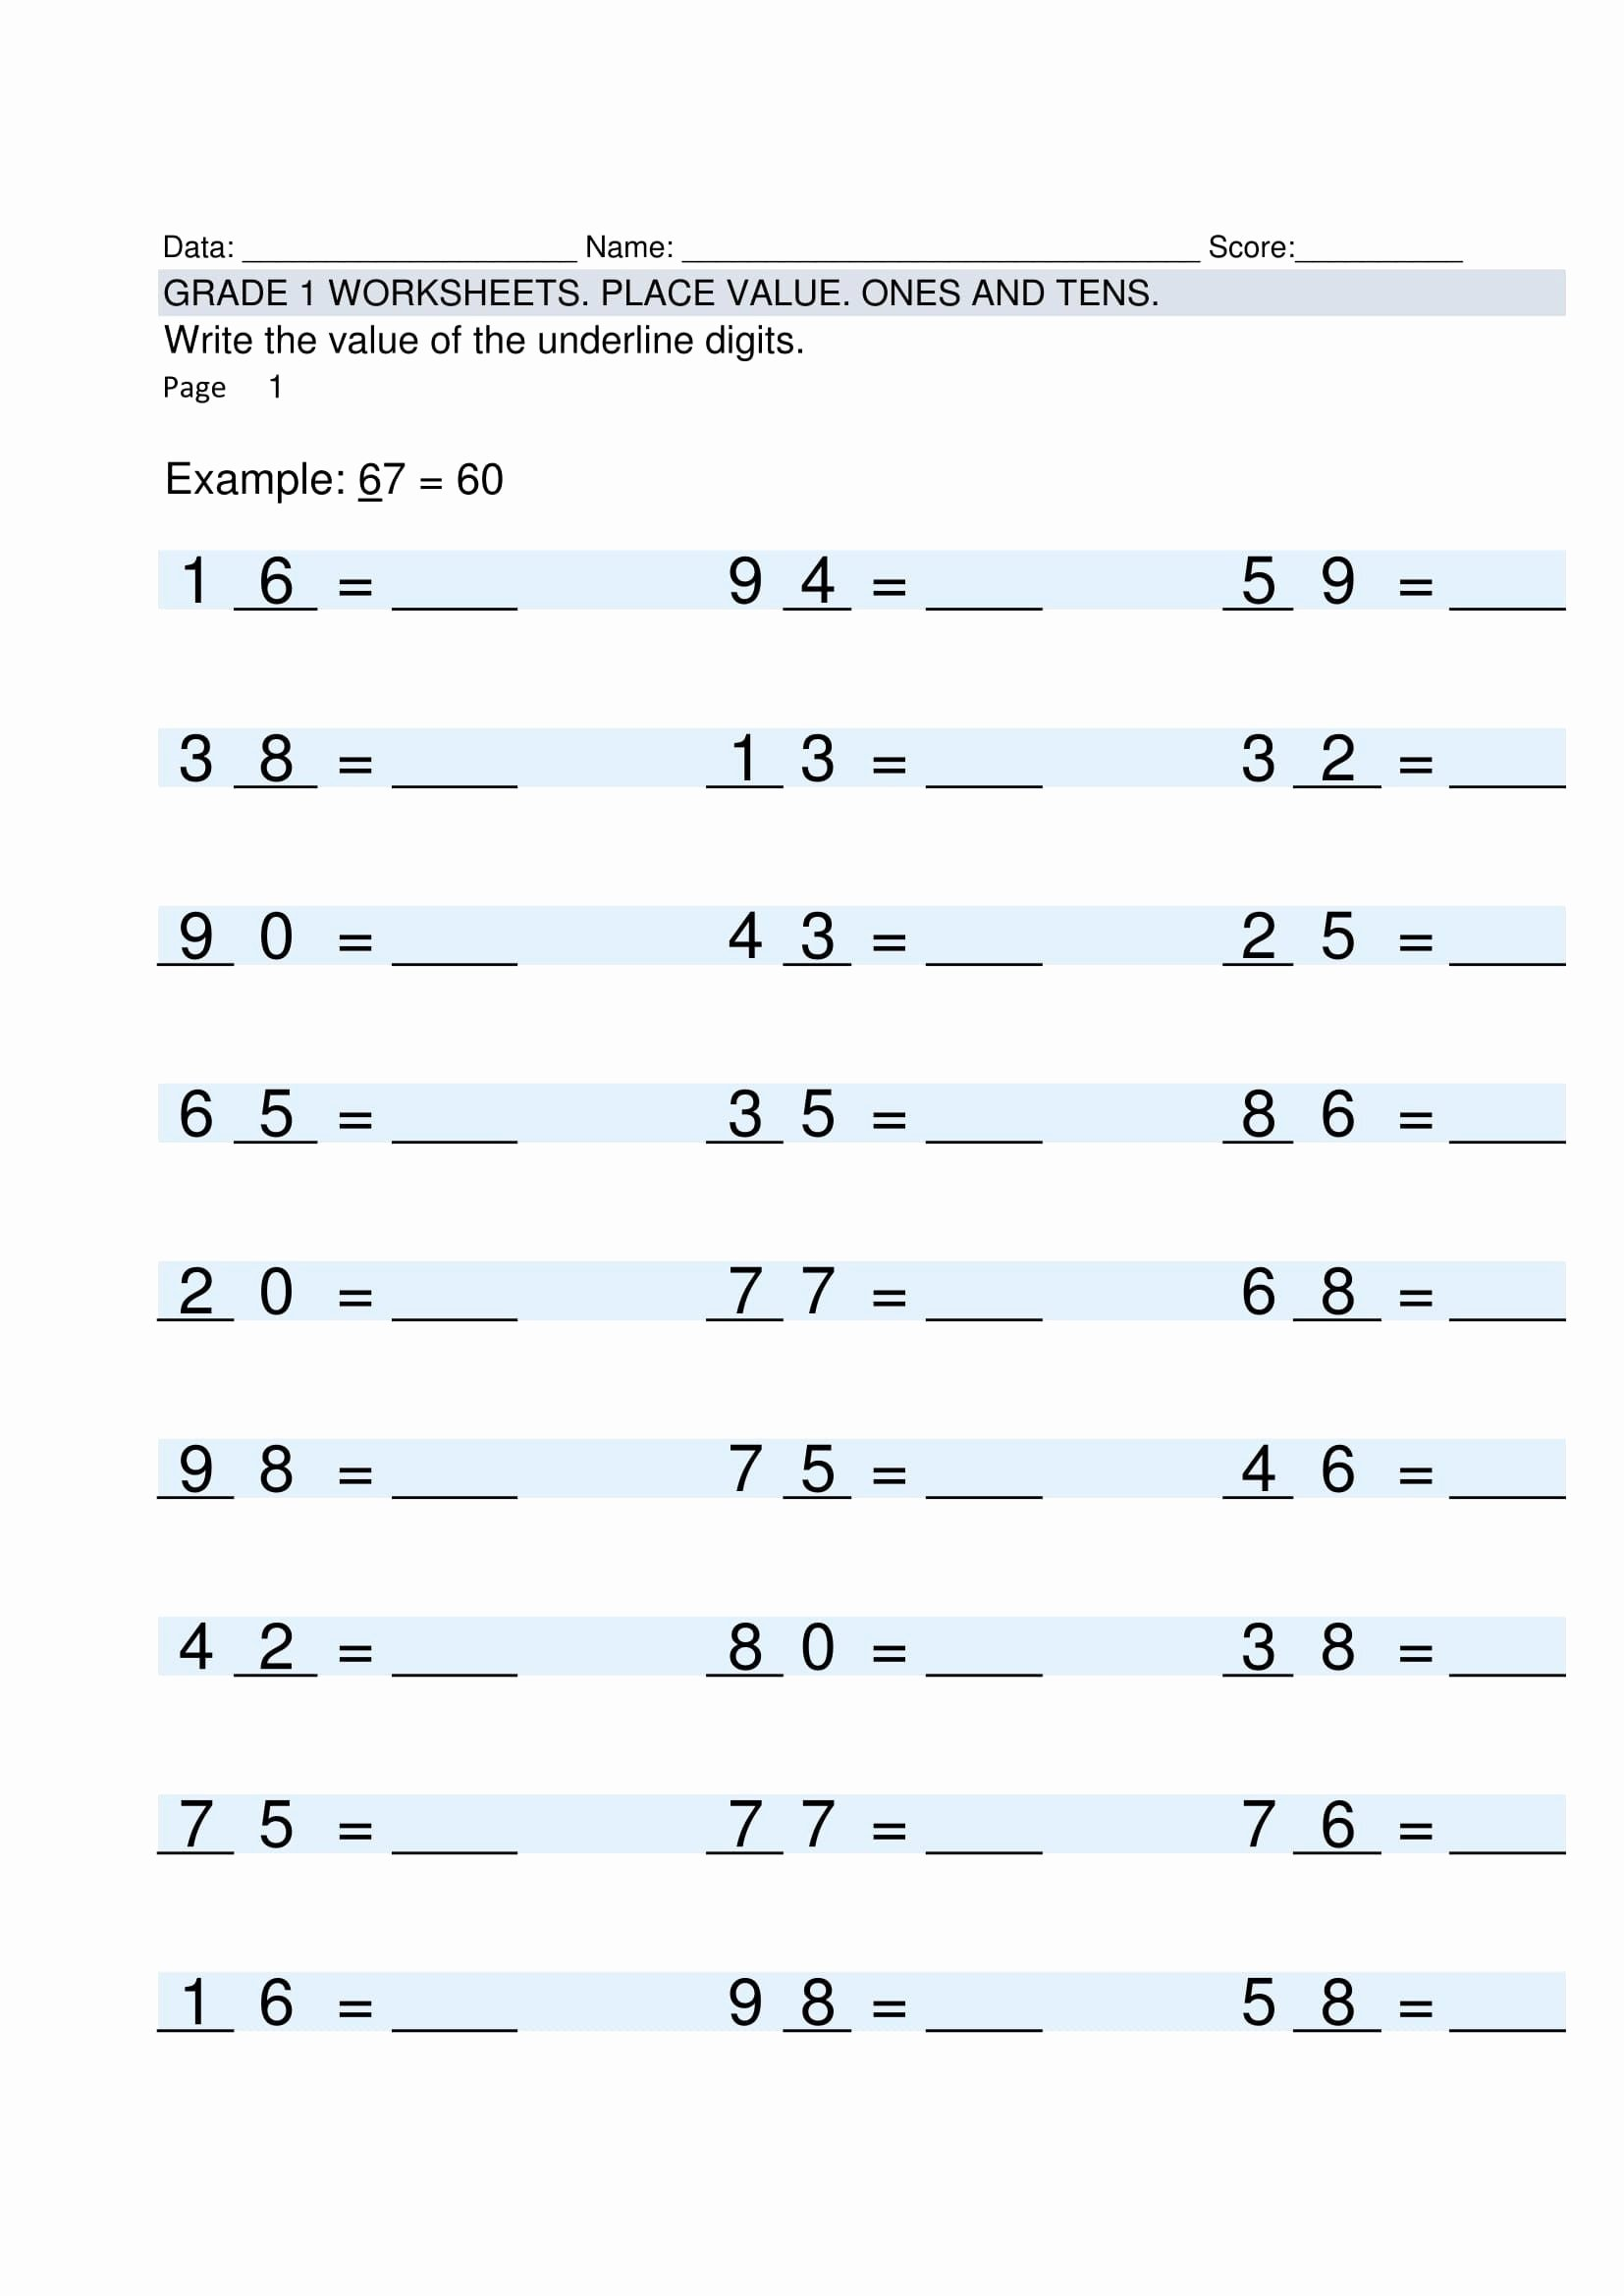 Multiplication Worksheets for Grade 5 Lovely Free Blank Multiplication Worksheets for Grade Template